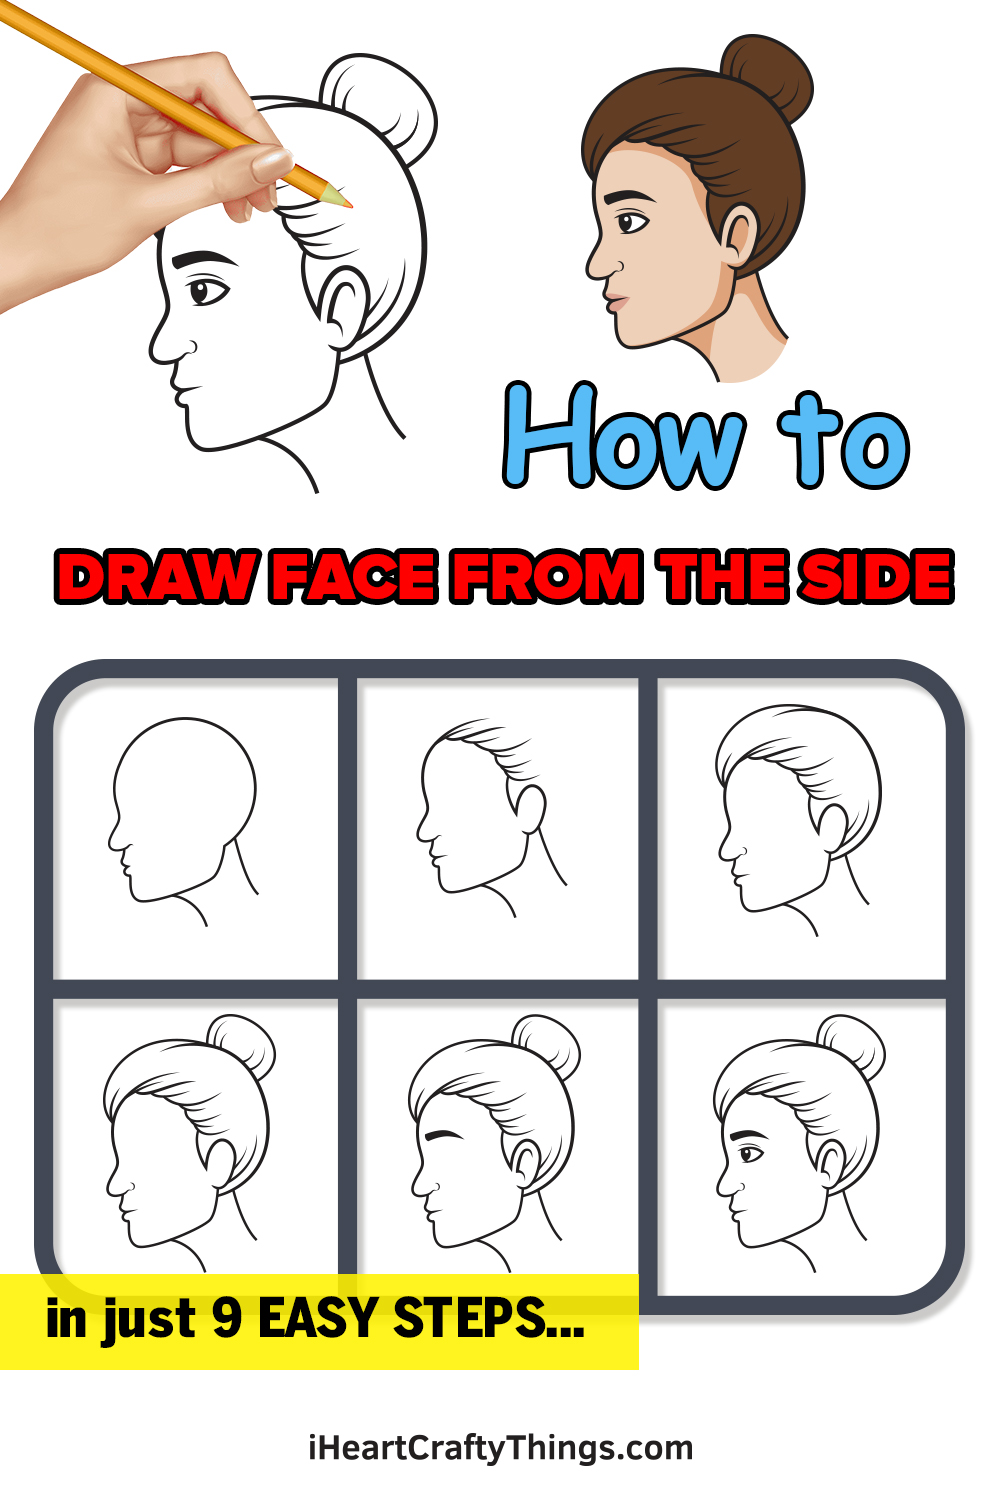 how to draw face from the side in 9 easy steps